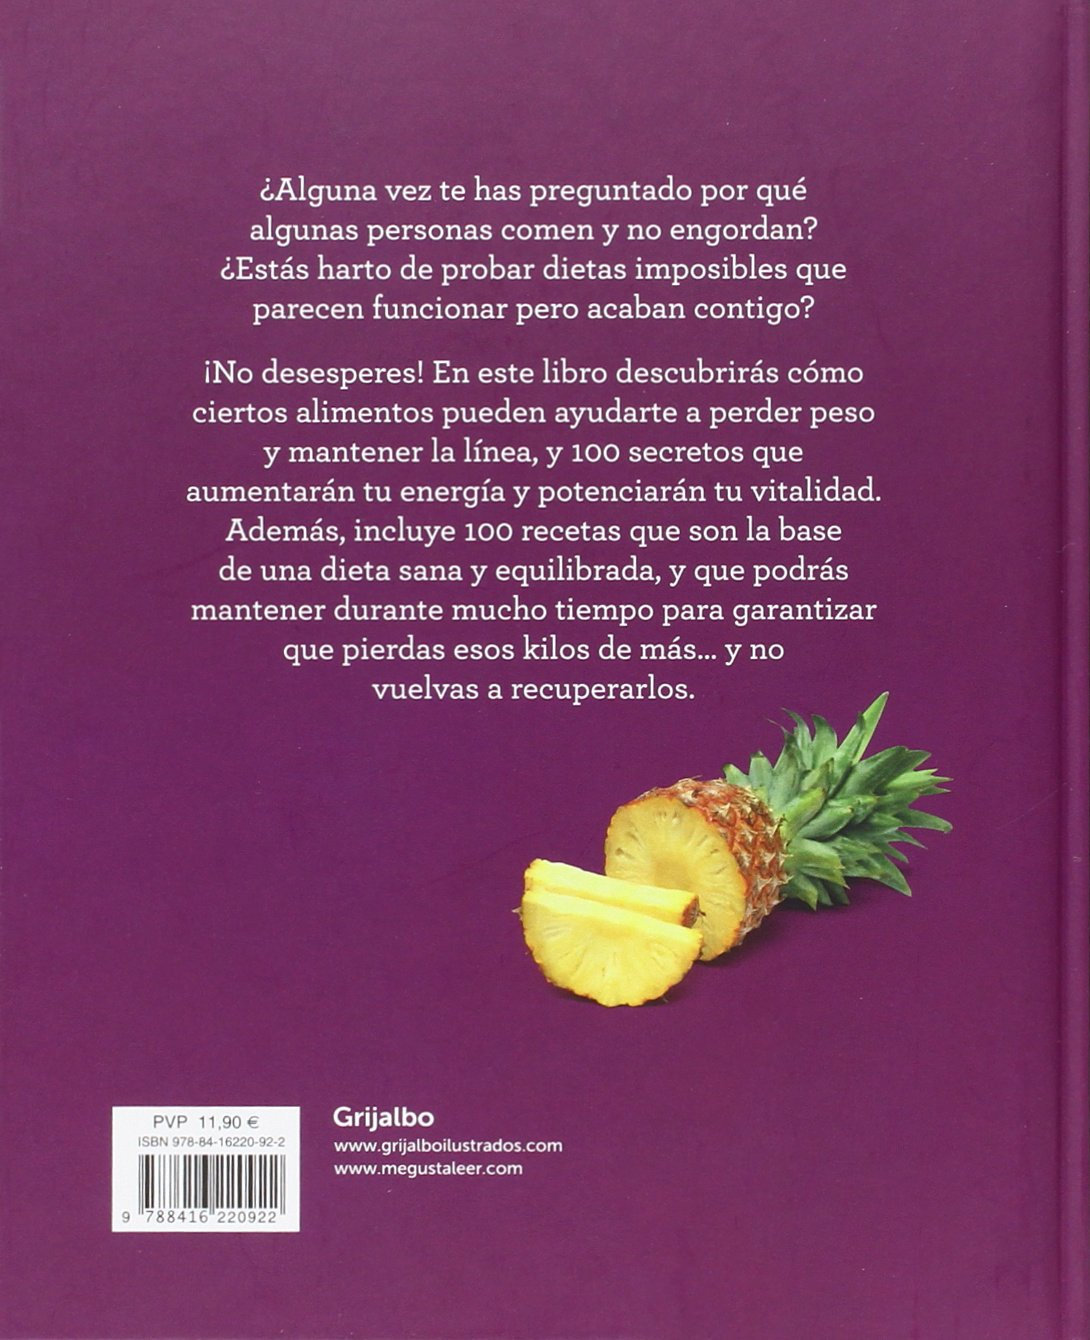 100 secretos para una dieta sana: Anna Selby: 9788416220922: Amazon ...